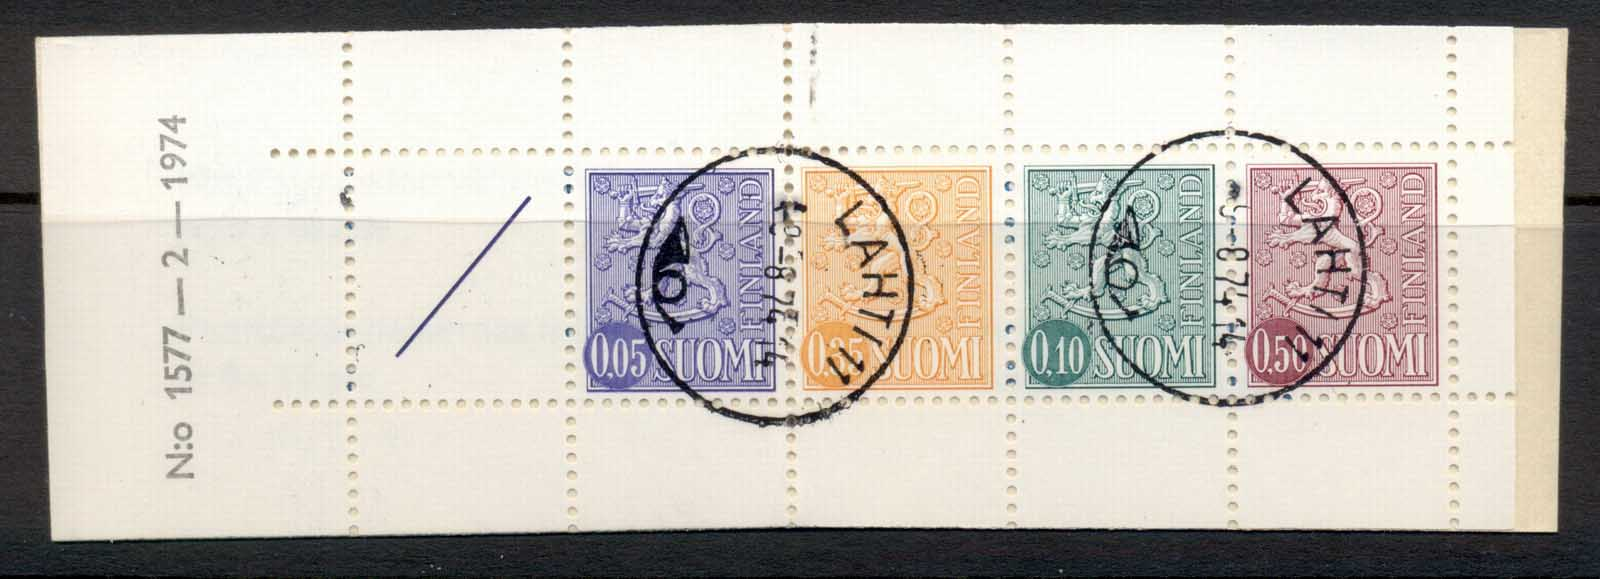 Finland 1968-78 Arms of Finland booklet 1x05,1x35,1x10,1x50, 1 label beige cover CTO